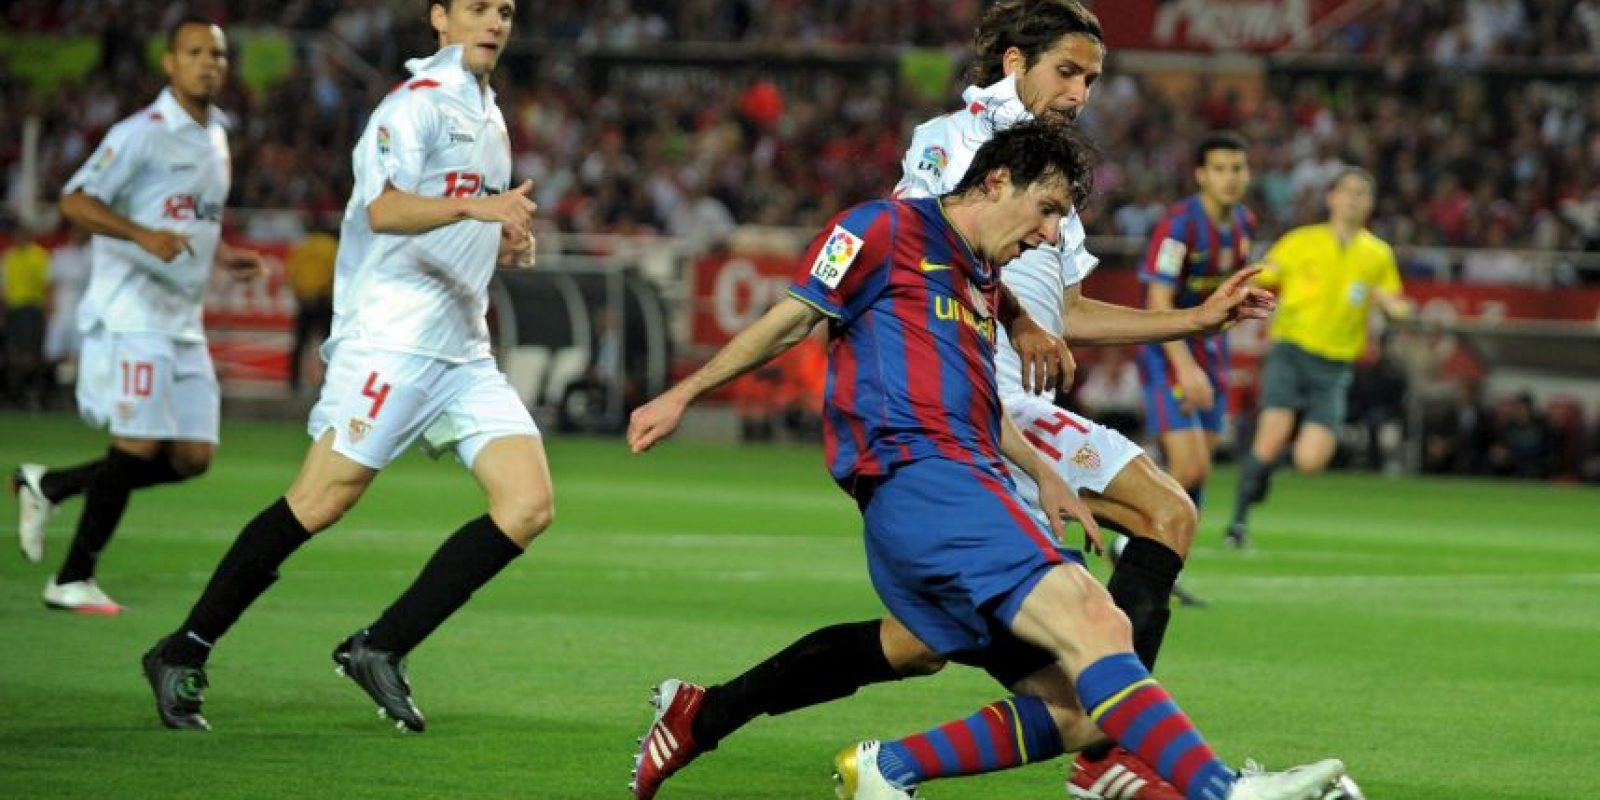 En la vuelta se impusieron 4-0 con un hat-trick de Messi Foto: Getty Images